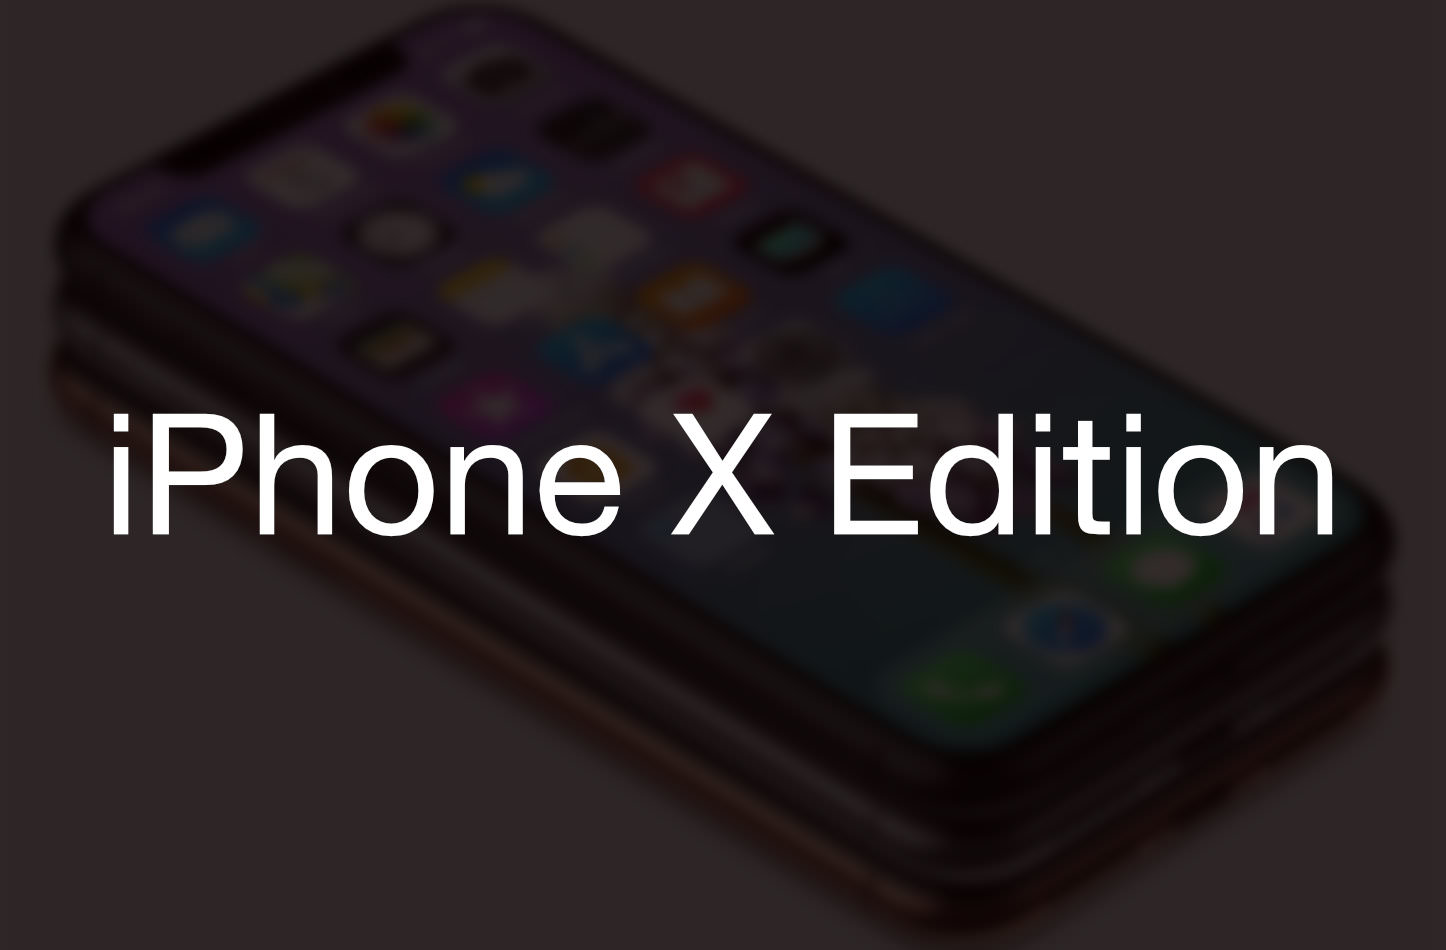 iphone-x-edition.jpg